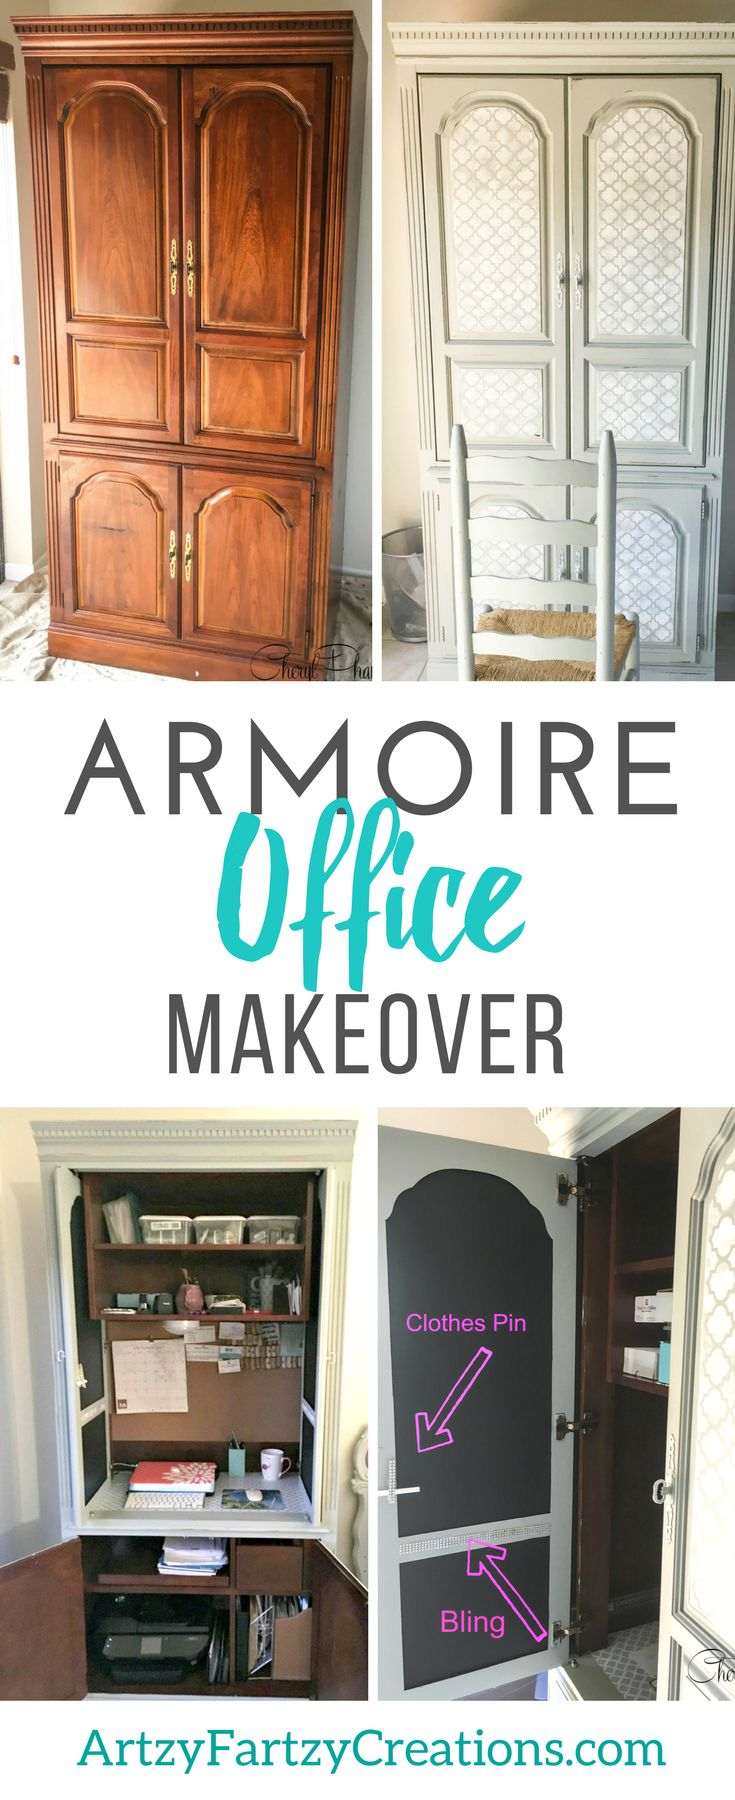 Office space tps report quote - A Great Space Saver Office In An Armoire By Cheryl Phan Office Organization Ideas